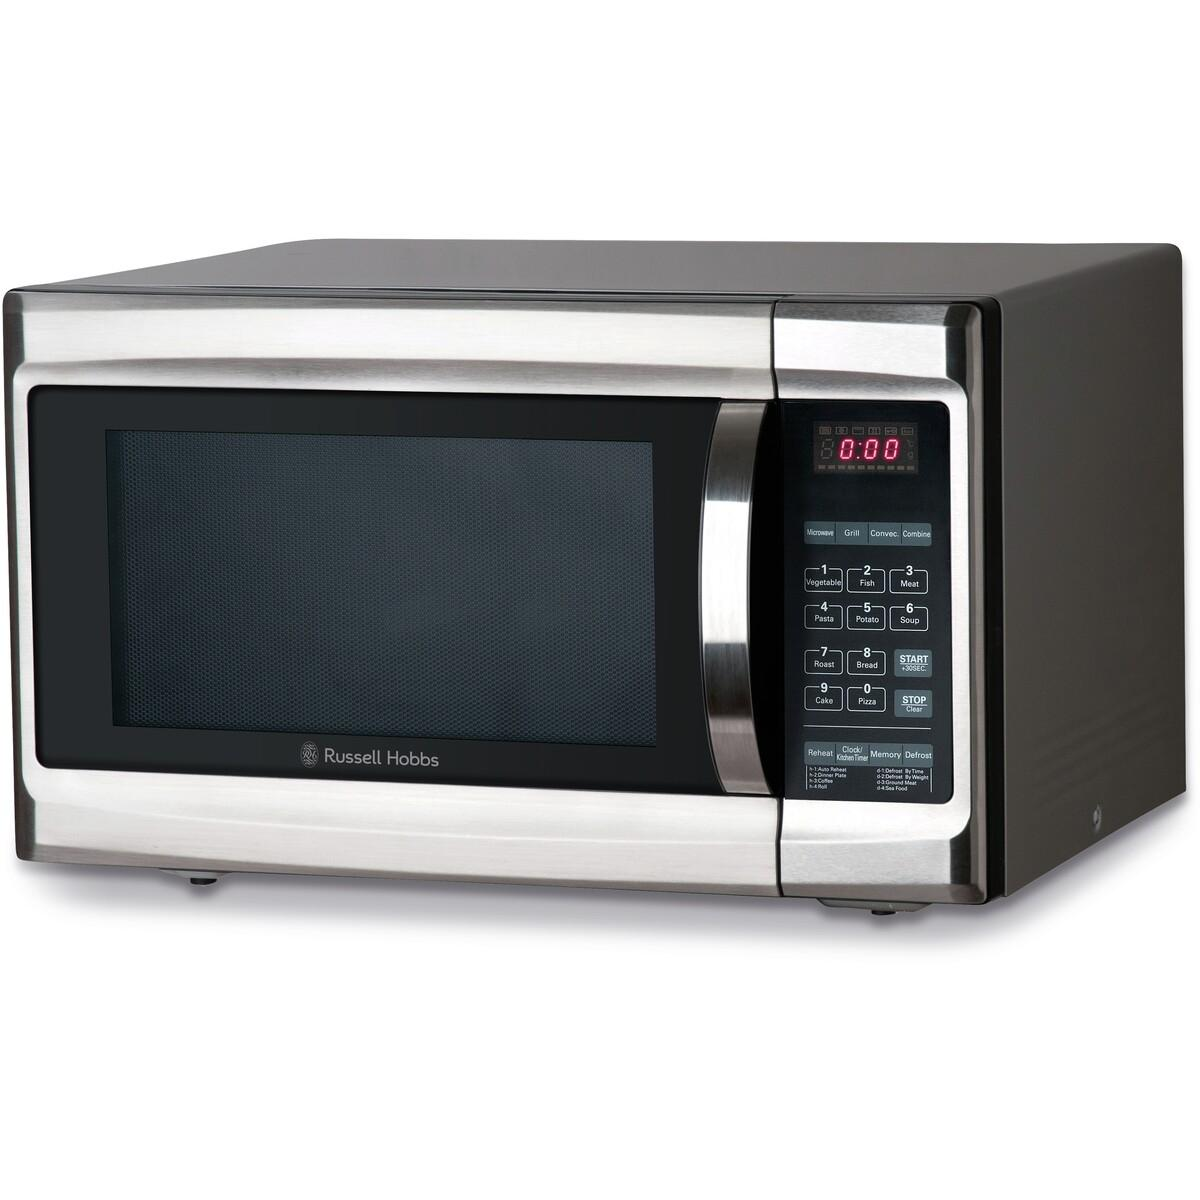 Russell Hobbs Convection Microwave 34L